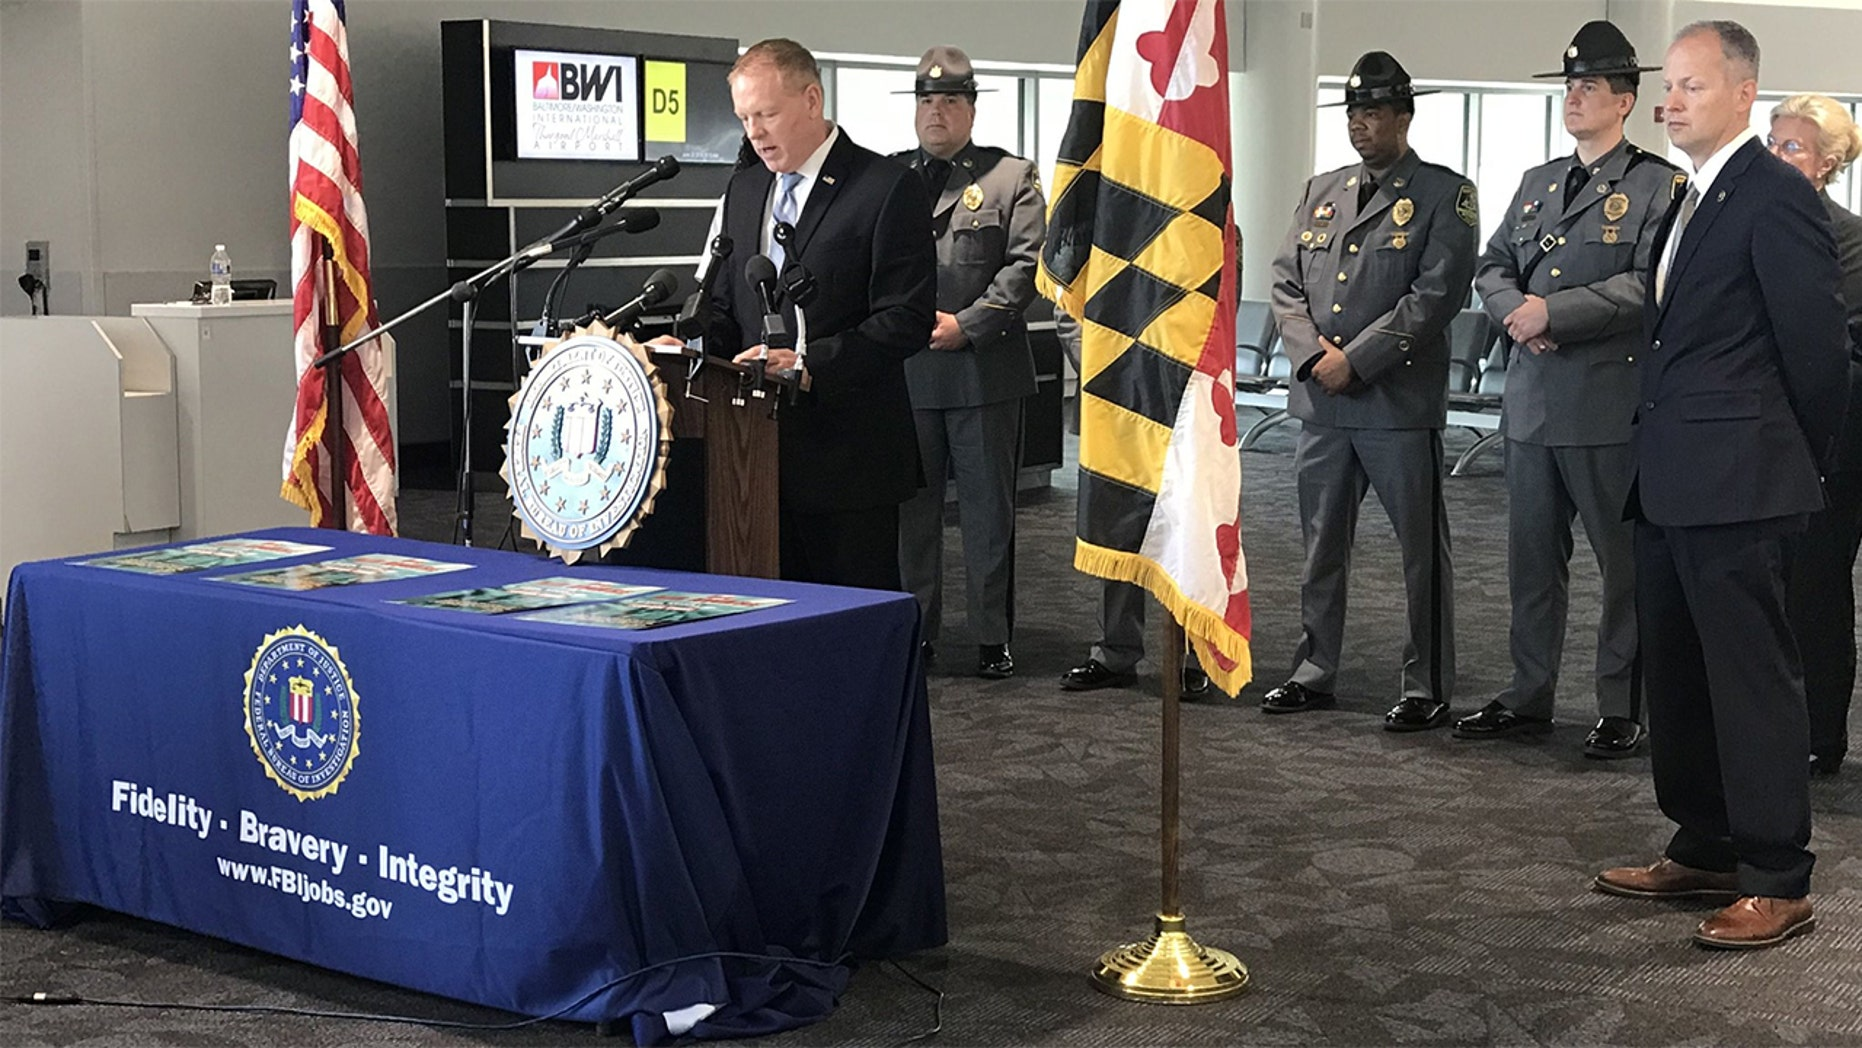 FBI Baltimore's ASAC Brian Nadeau and SA David Rodski warned the public of the increasing threat, and how travelers can stay safe.